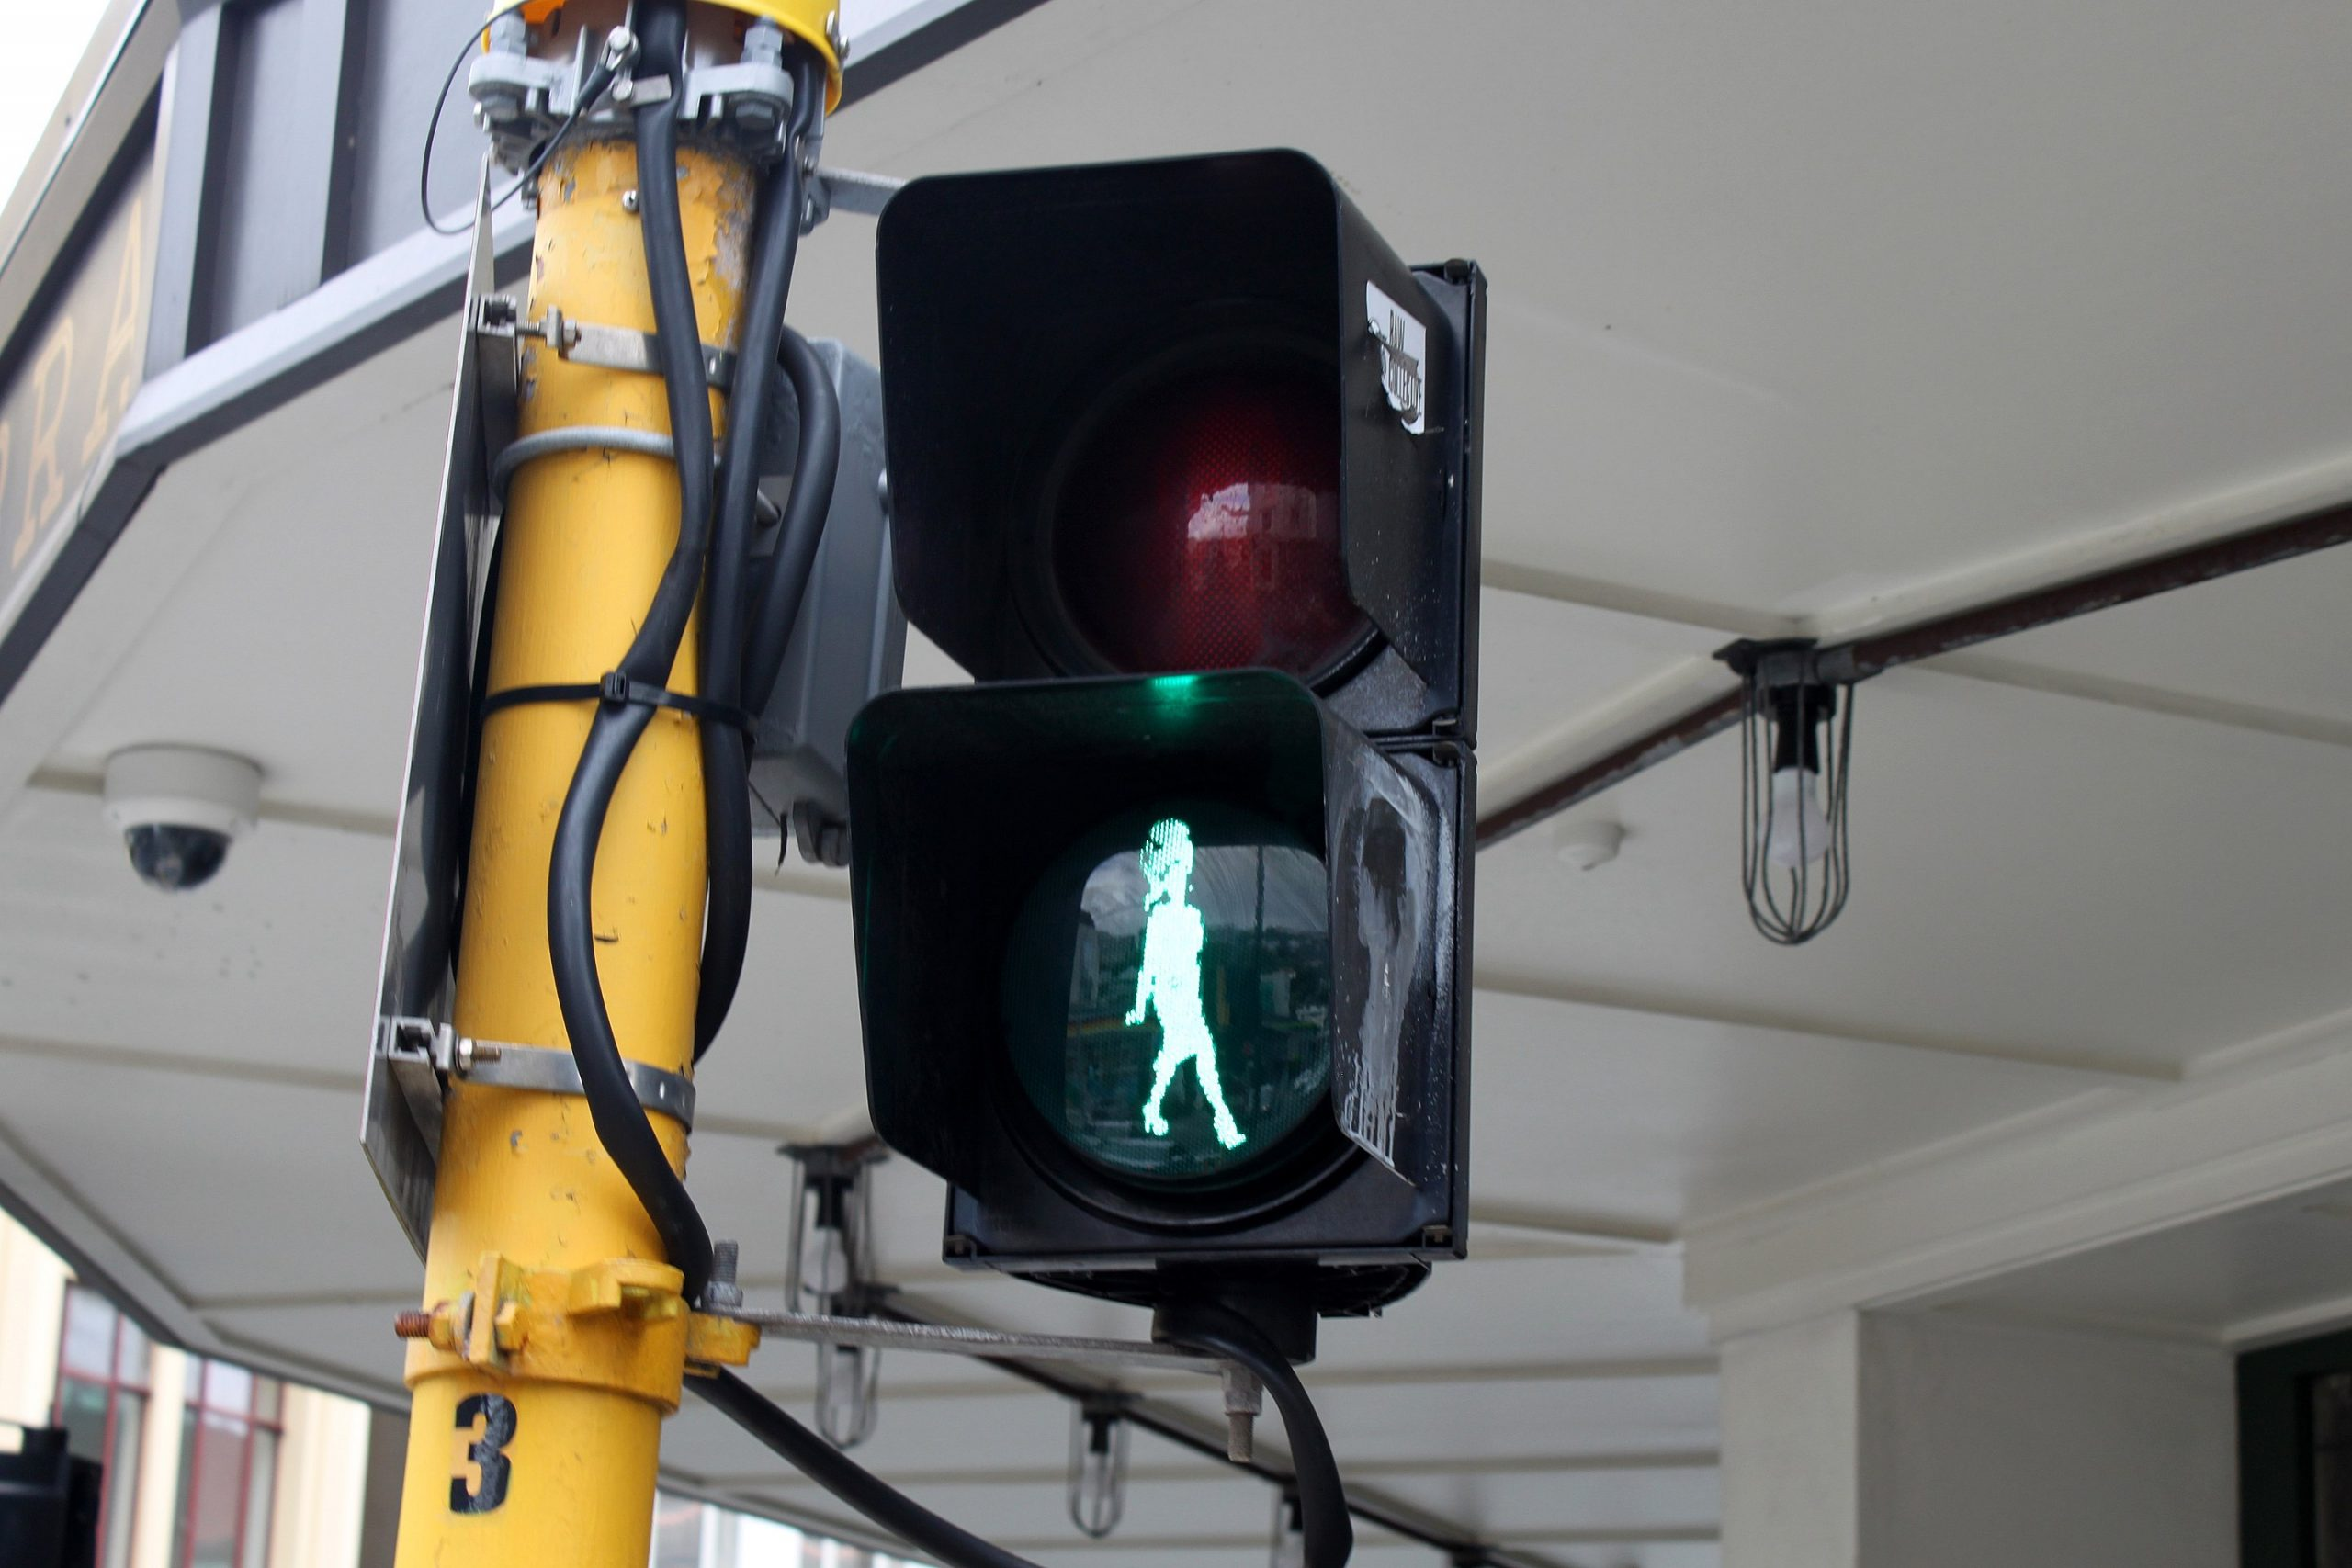 The Carmen Rupe pedestrian crossing light on the corner of Cuba and Vivian Streets, Wellington